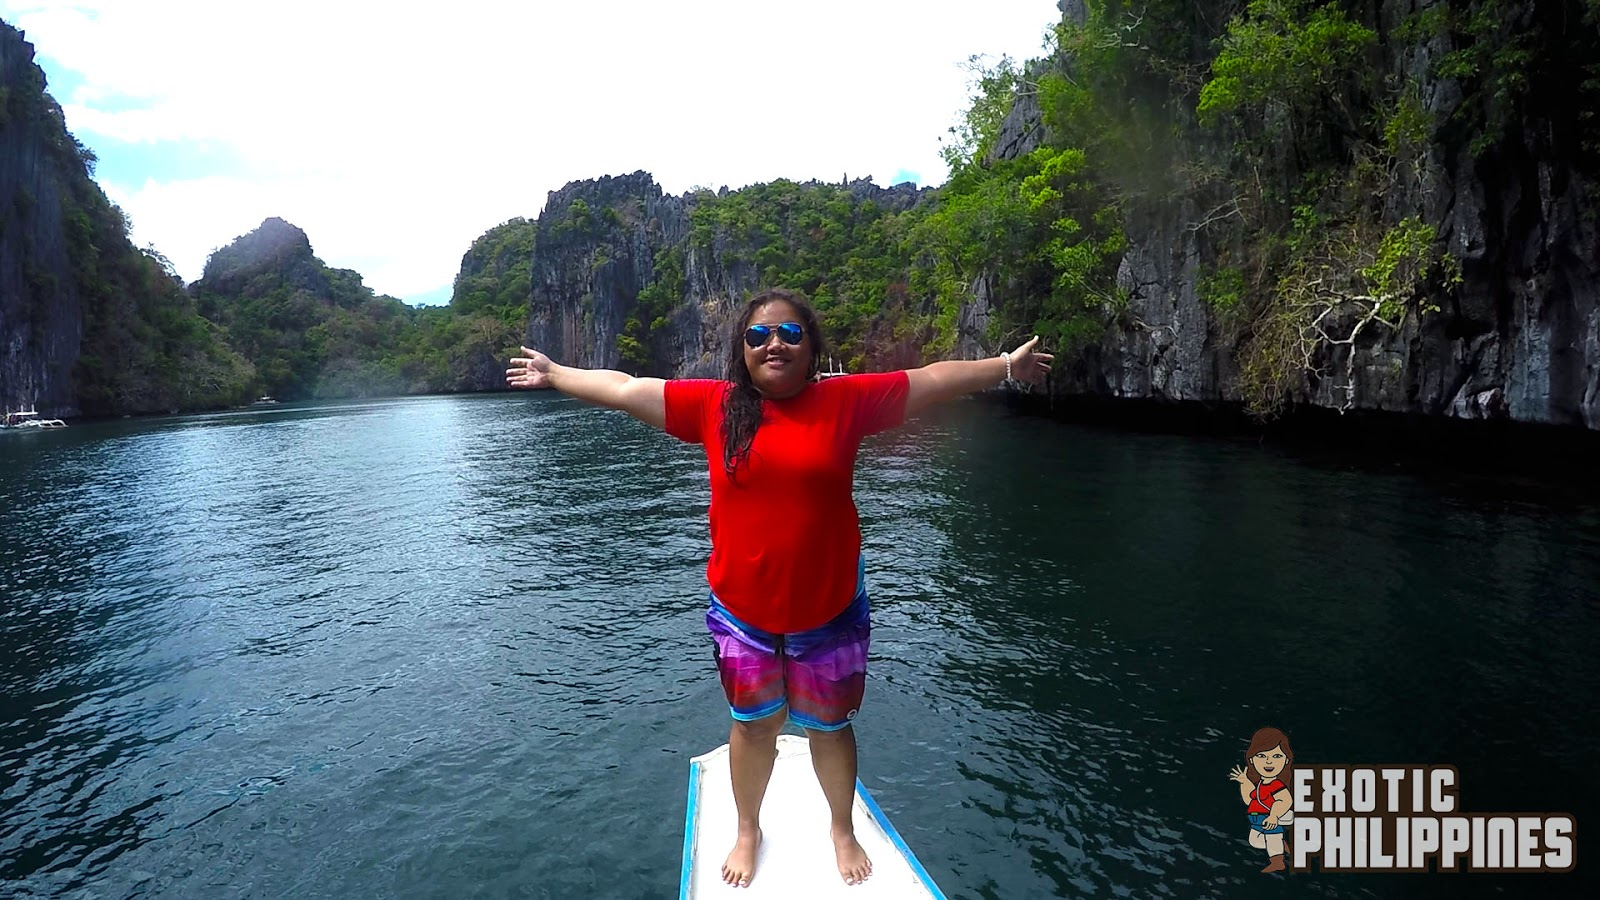 Big Lagoon El Nido Palawan Tour A Exotic Philippines Travel Blog Blogger